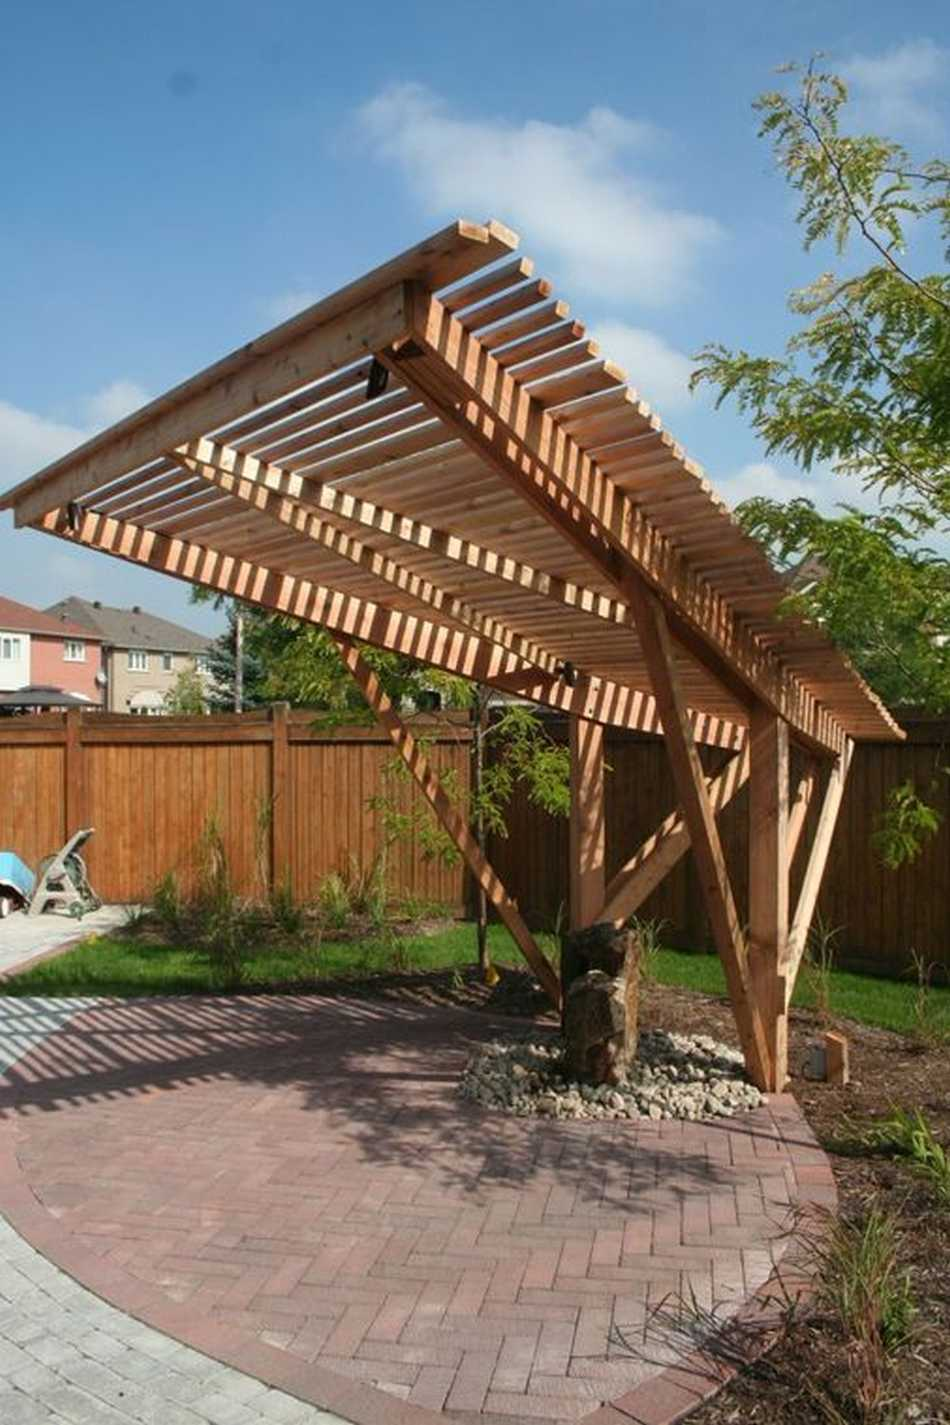 Pergola Designs Unique And Elegant Patio Pergola Designs Pergola Gazebos